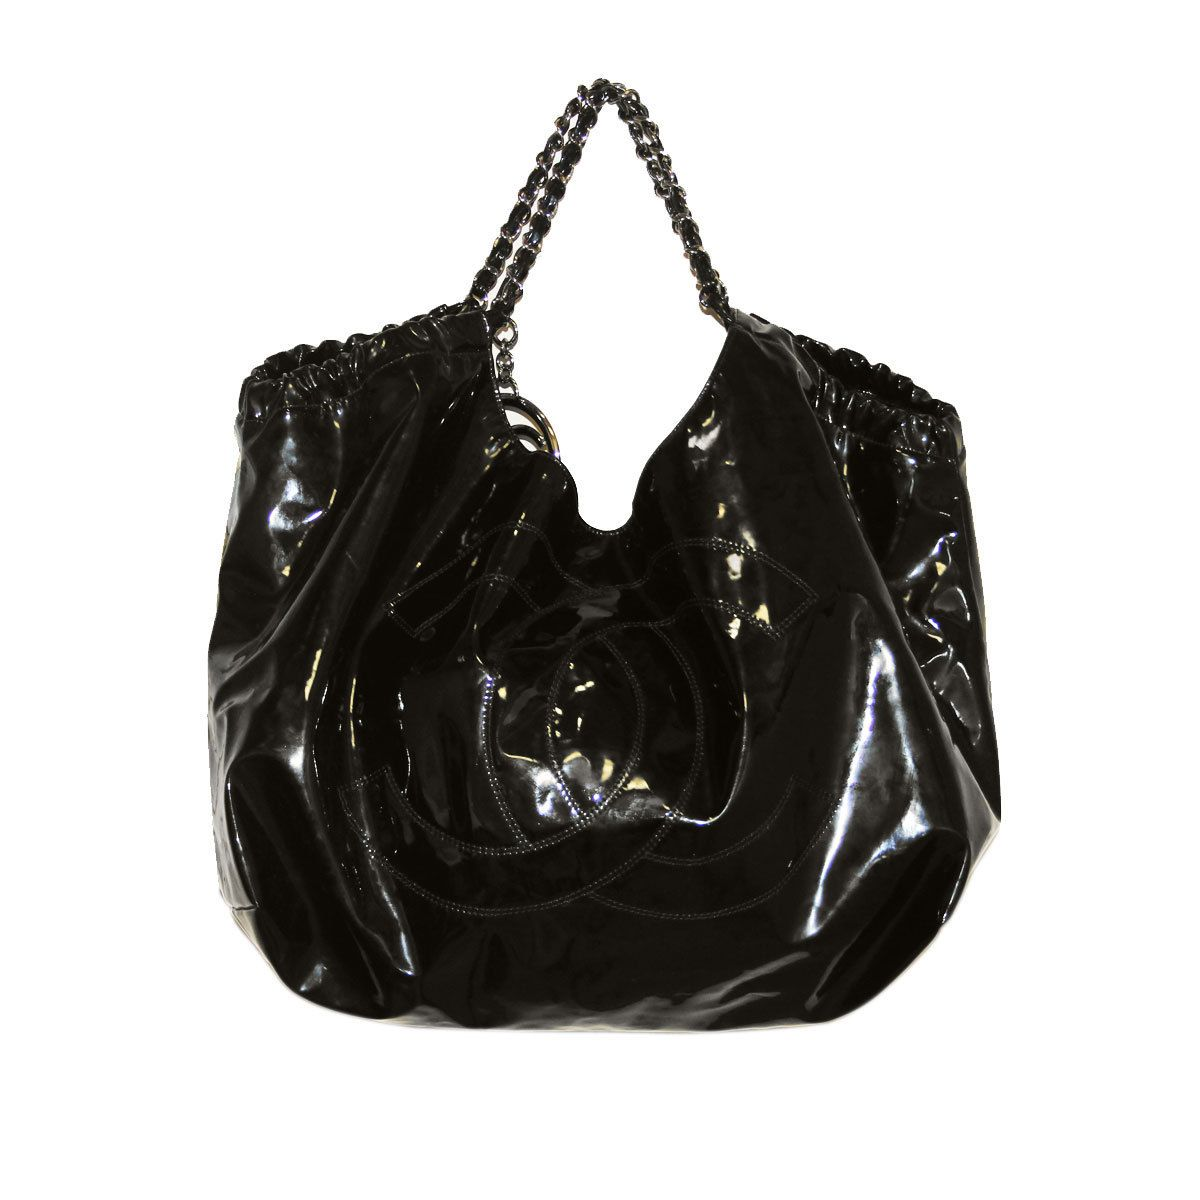 Authentic CHANEL Black Patent Leather XL Cabas Tote Bag